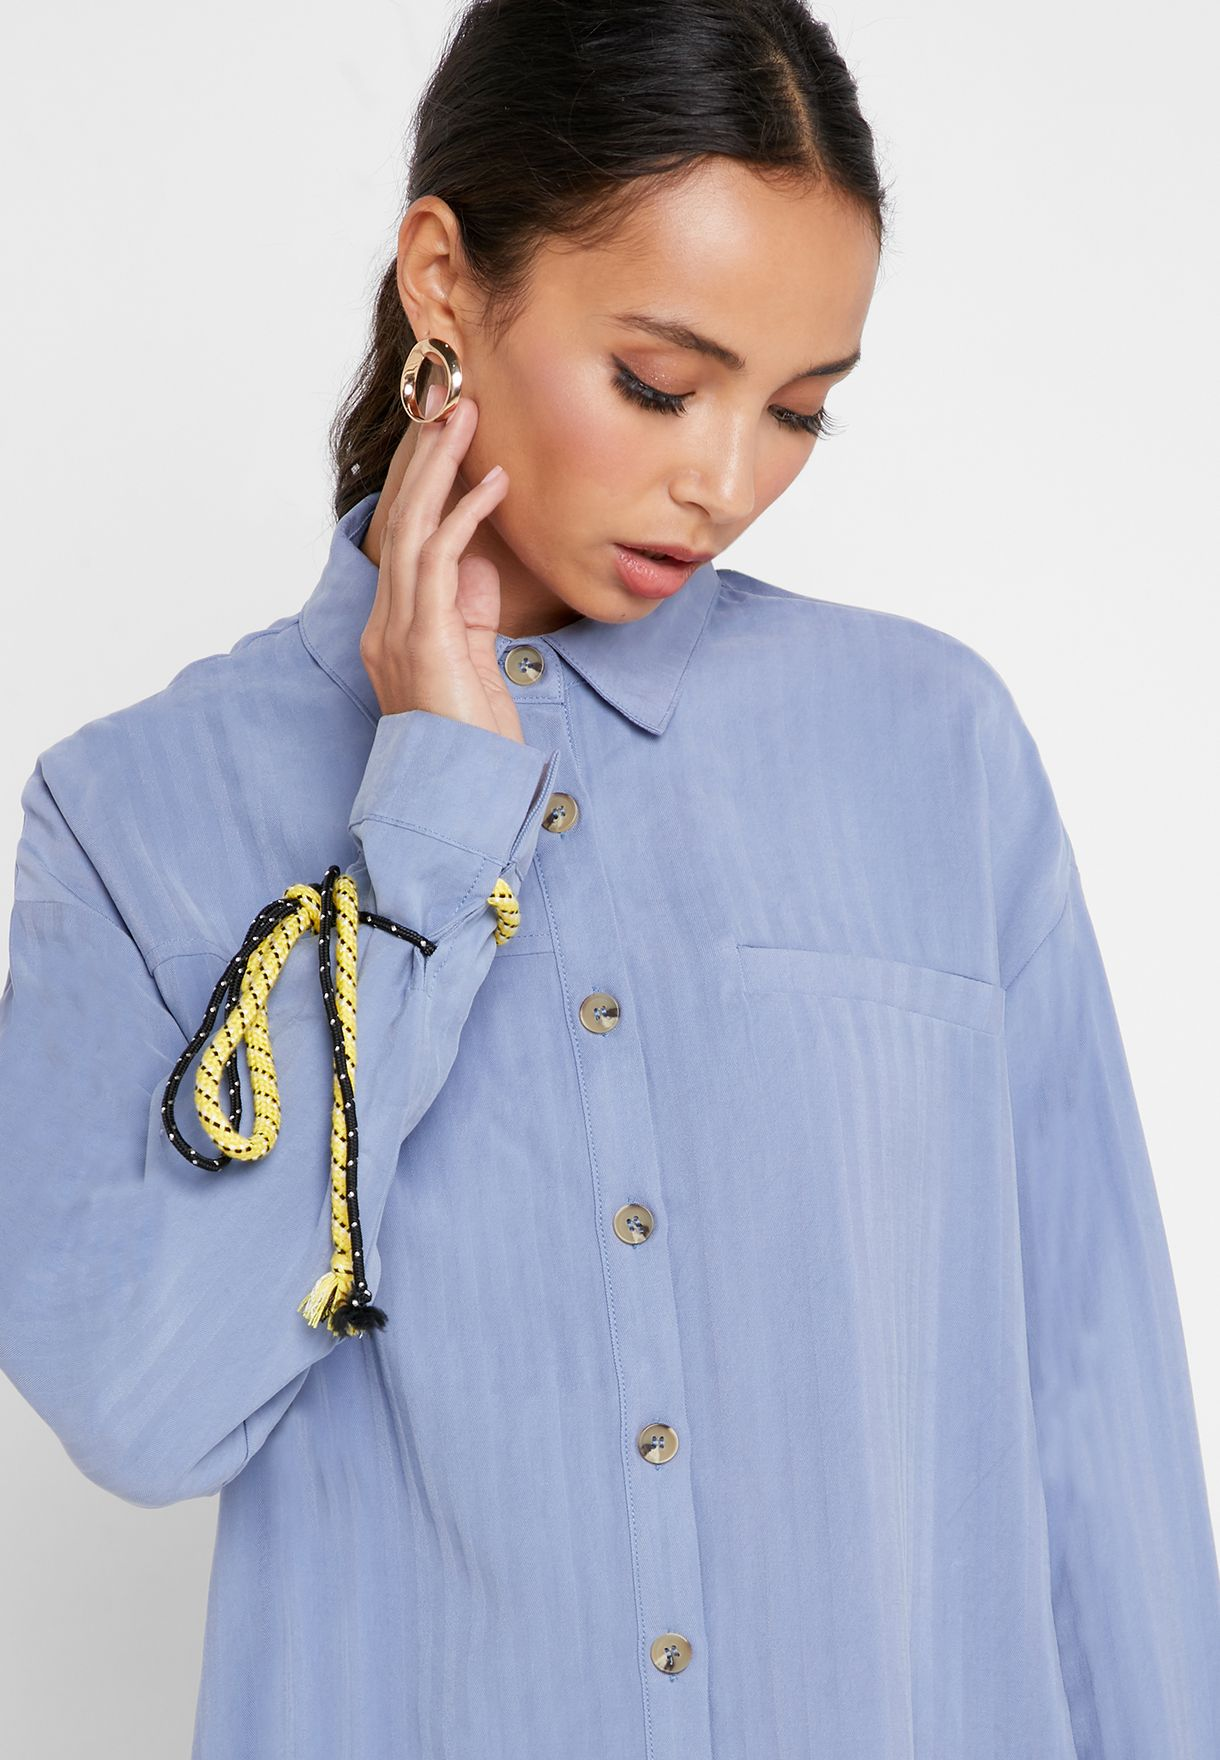 Buy Ghospell Blue Tie Cuff Button Down Shirt For Women, Uae 23288at60yip